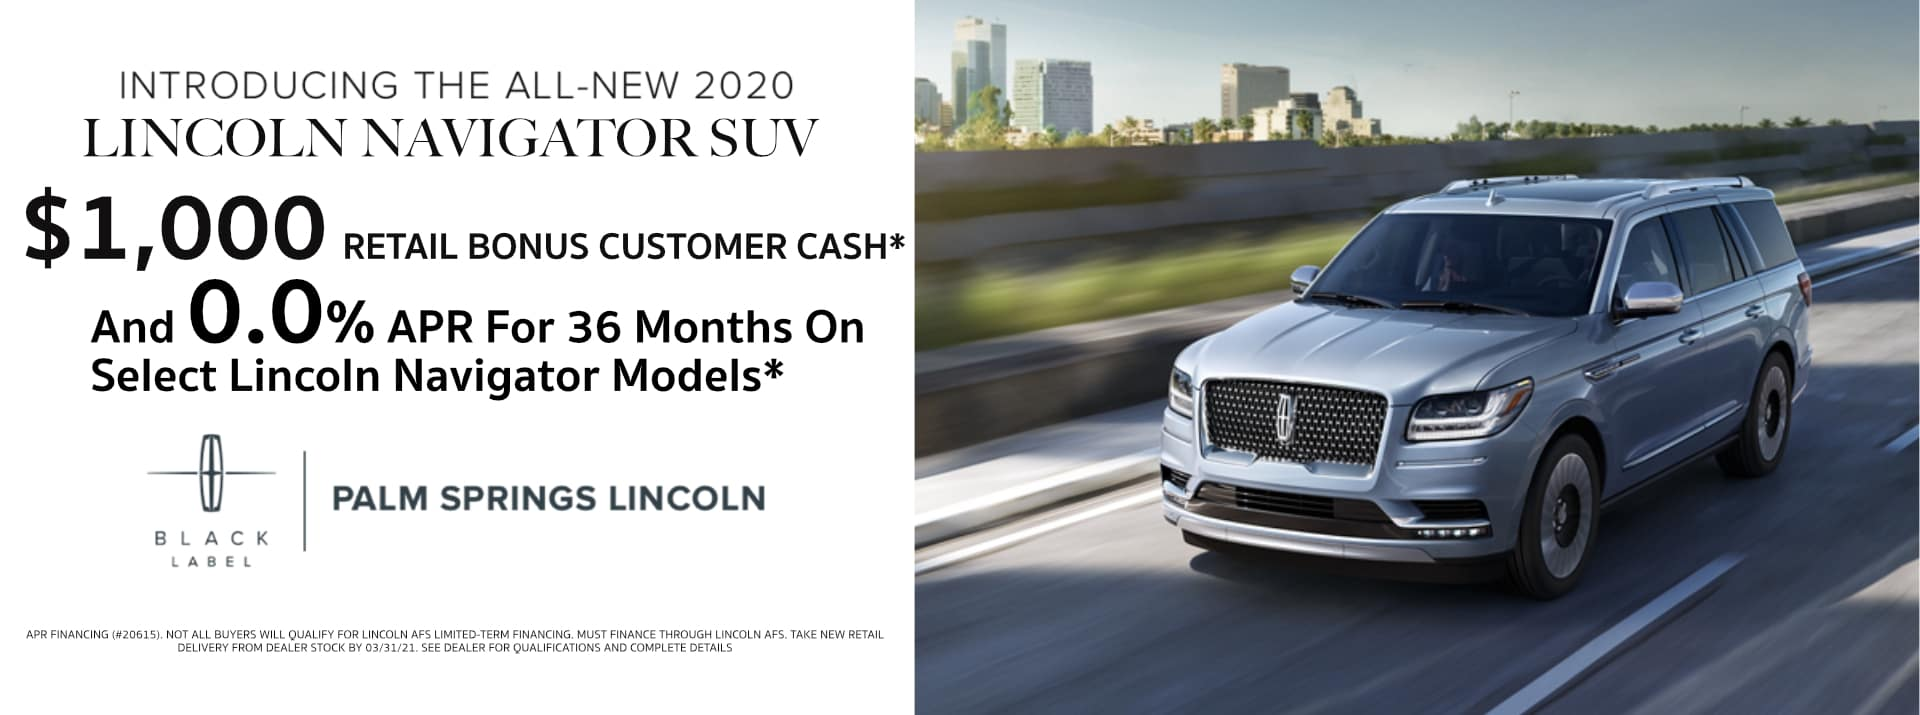 January 2021_2020_Lincoln_Navigator_1920x715